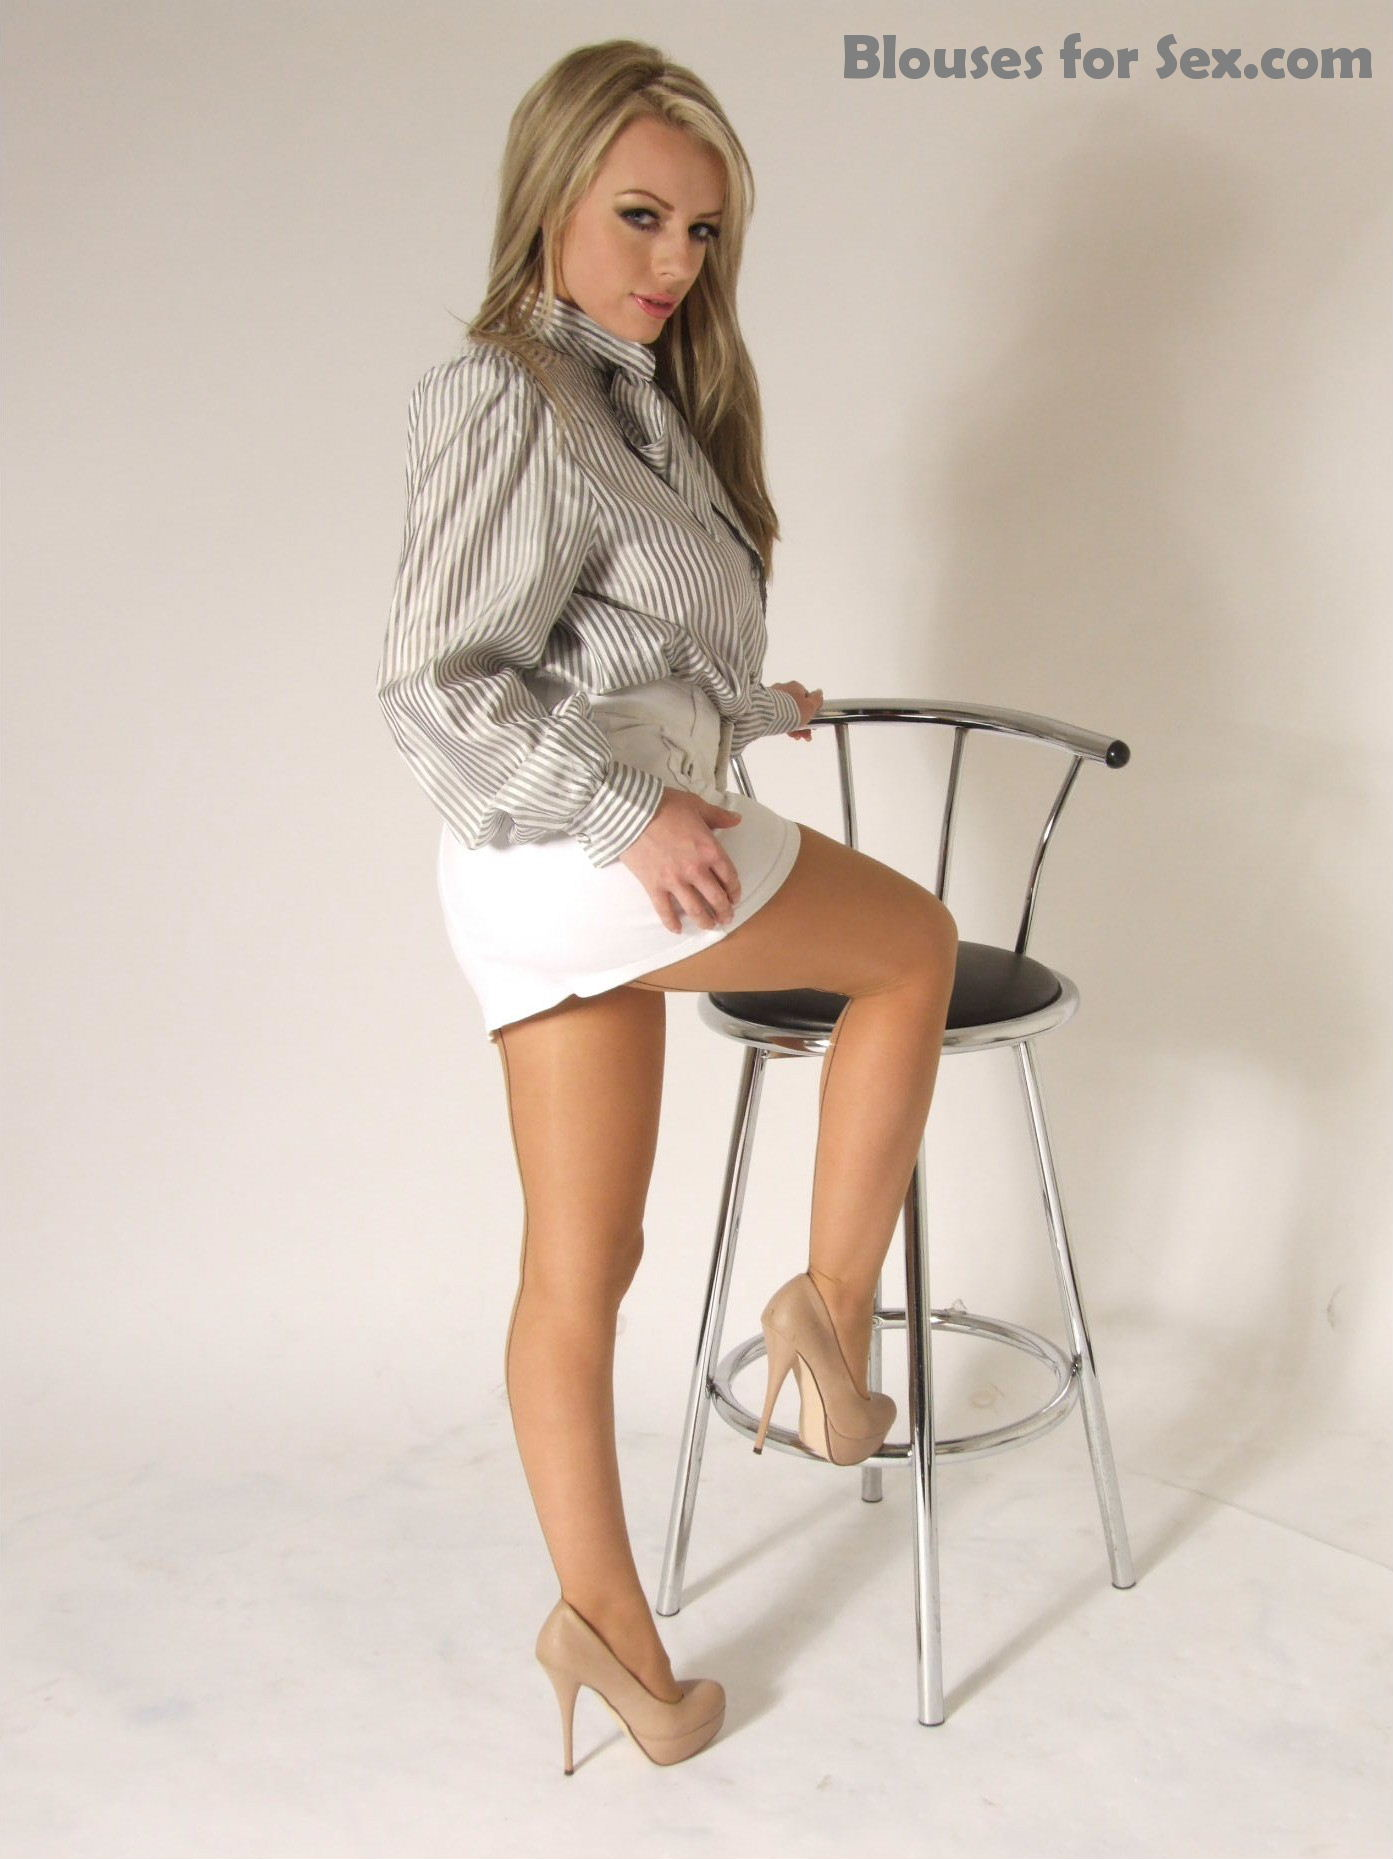 Blouse and Pantyhose